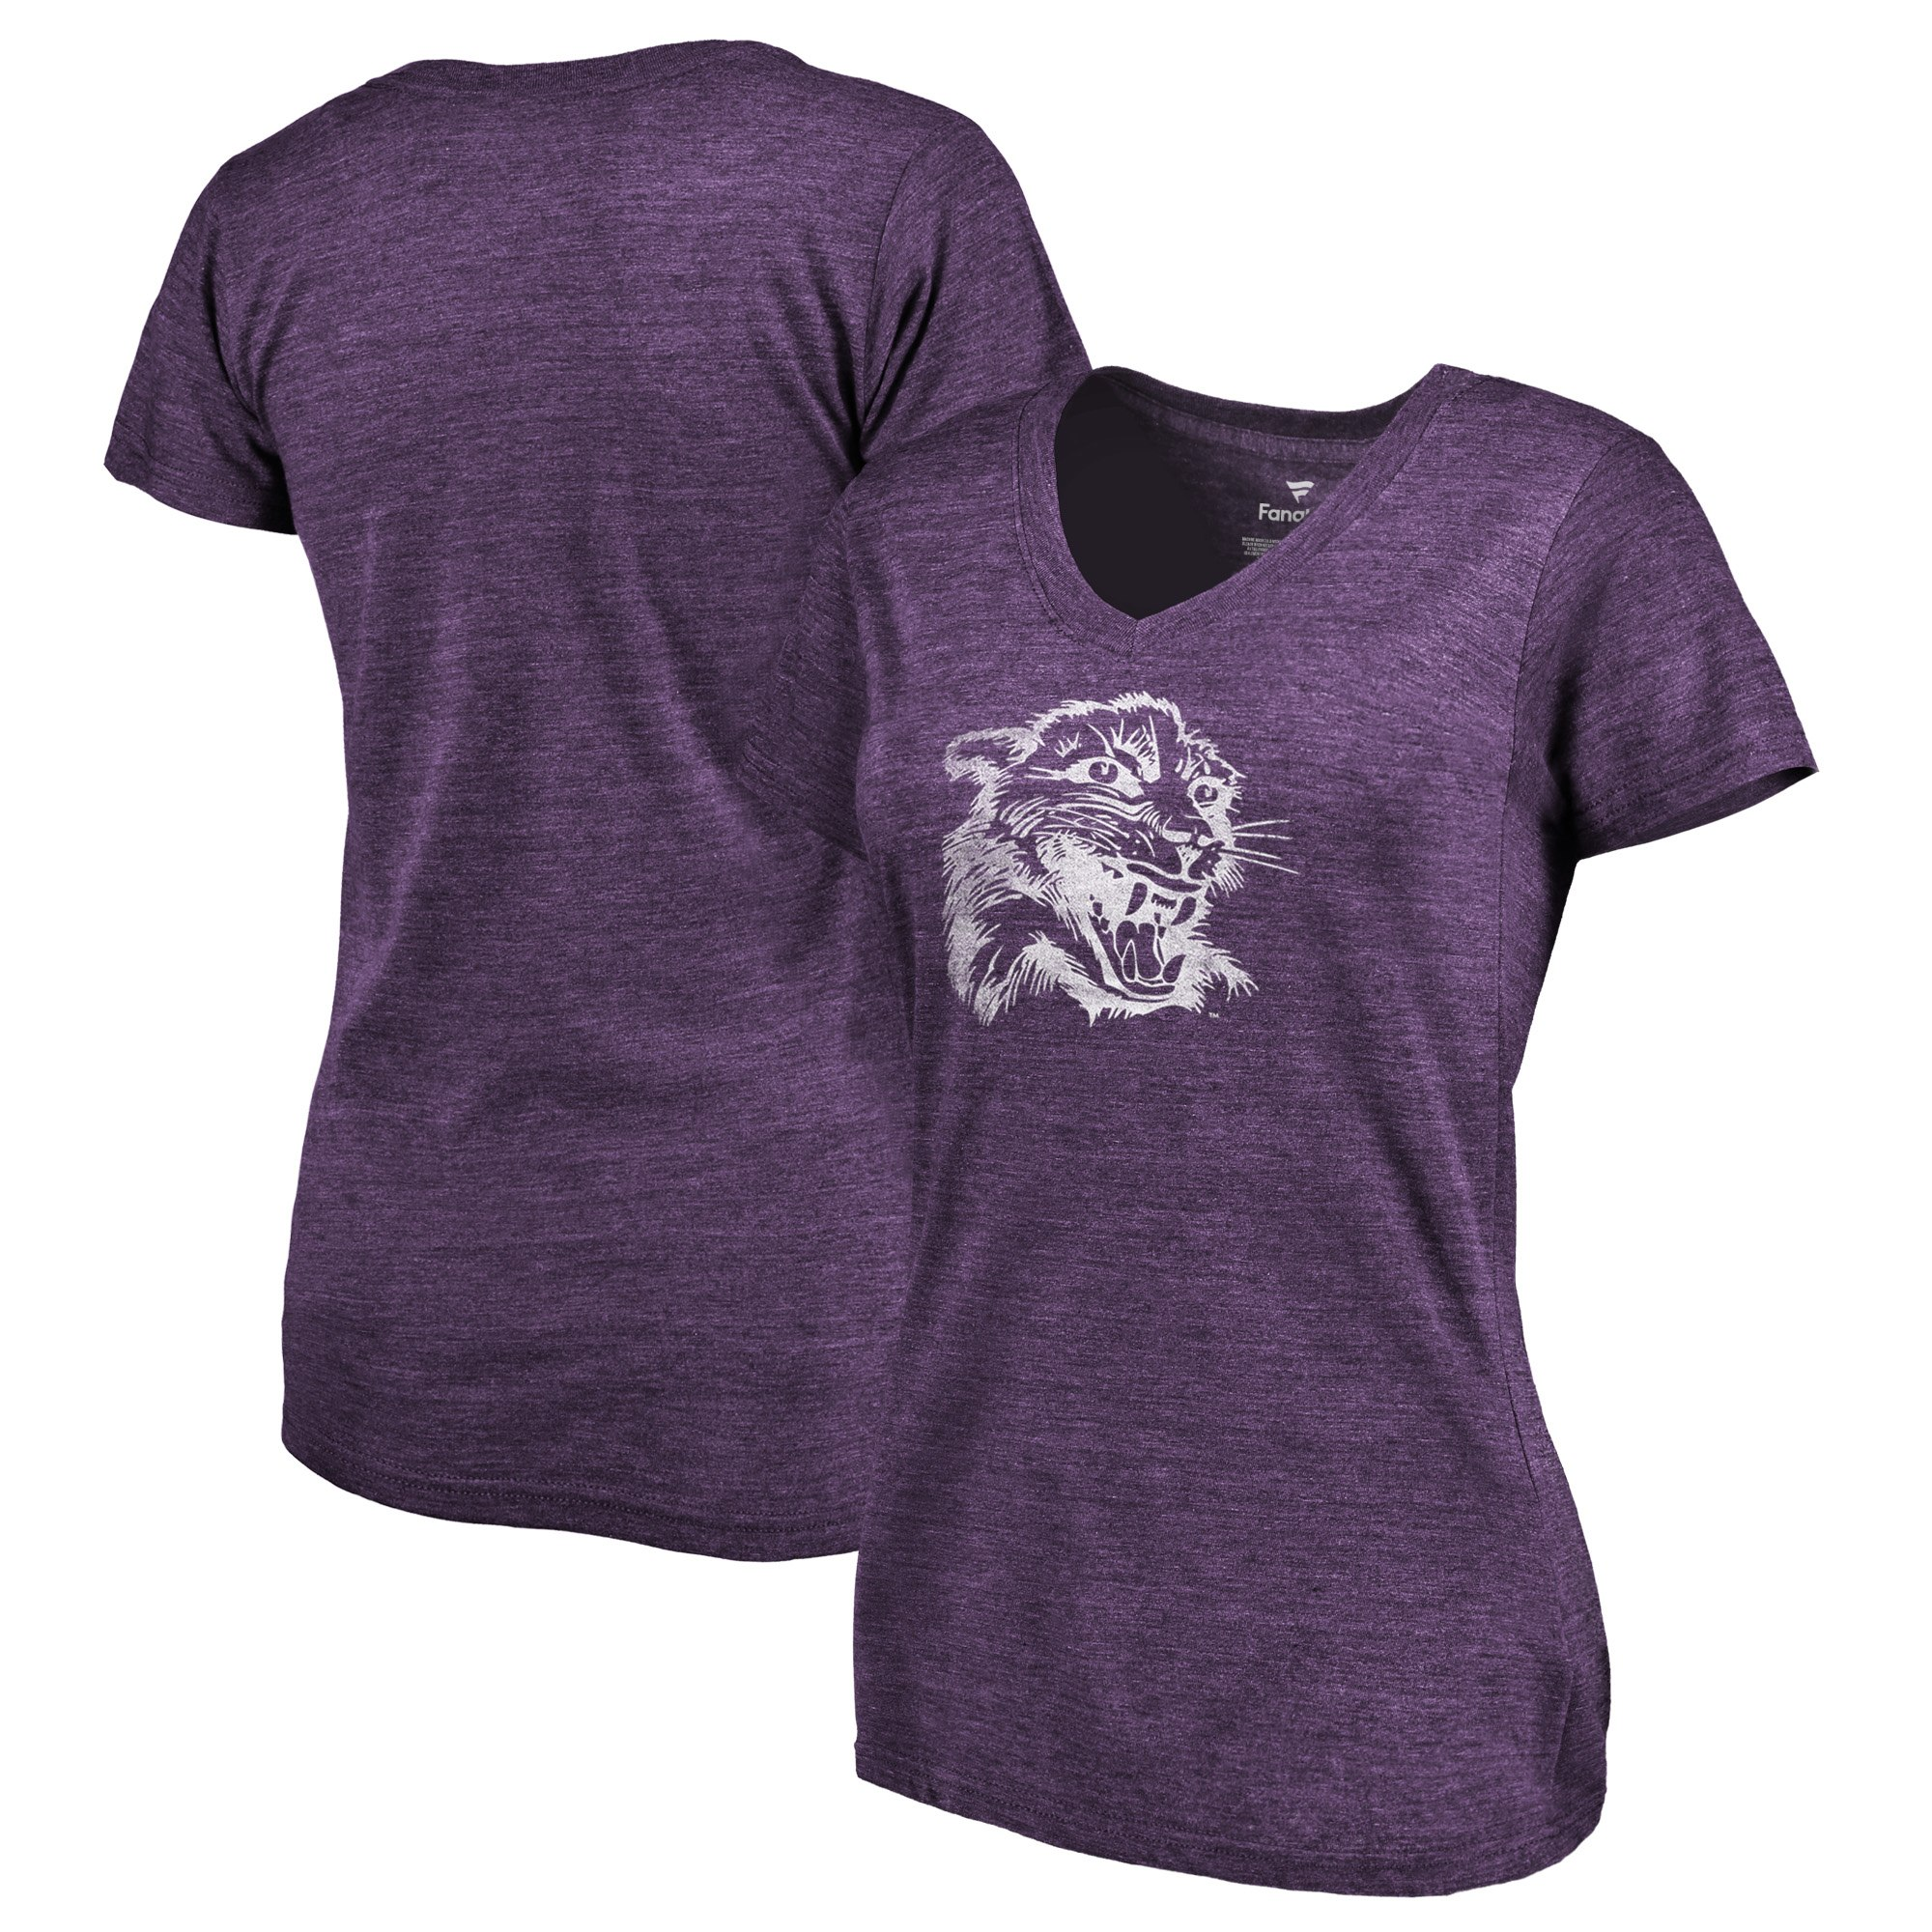 2020 NCAA Fanatics Branded Northwestern Wildcats Women Purple College Vault Primary Logo TriBlend VNeck TShirt